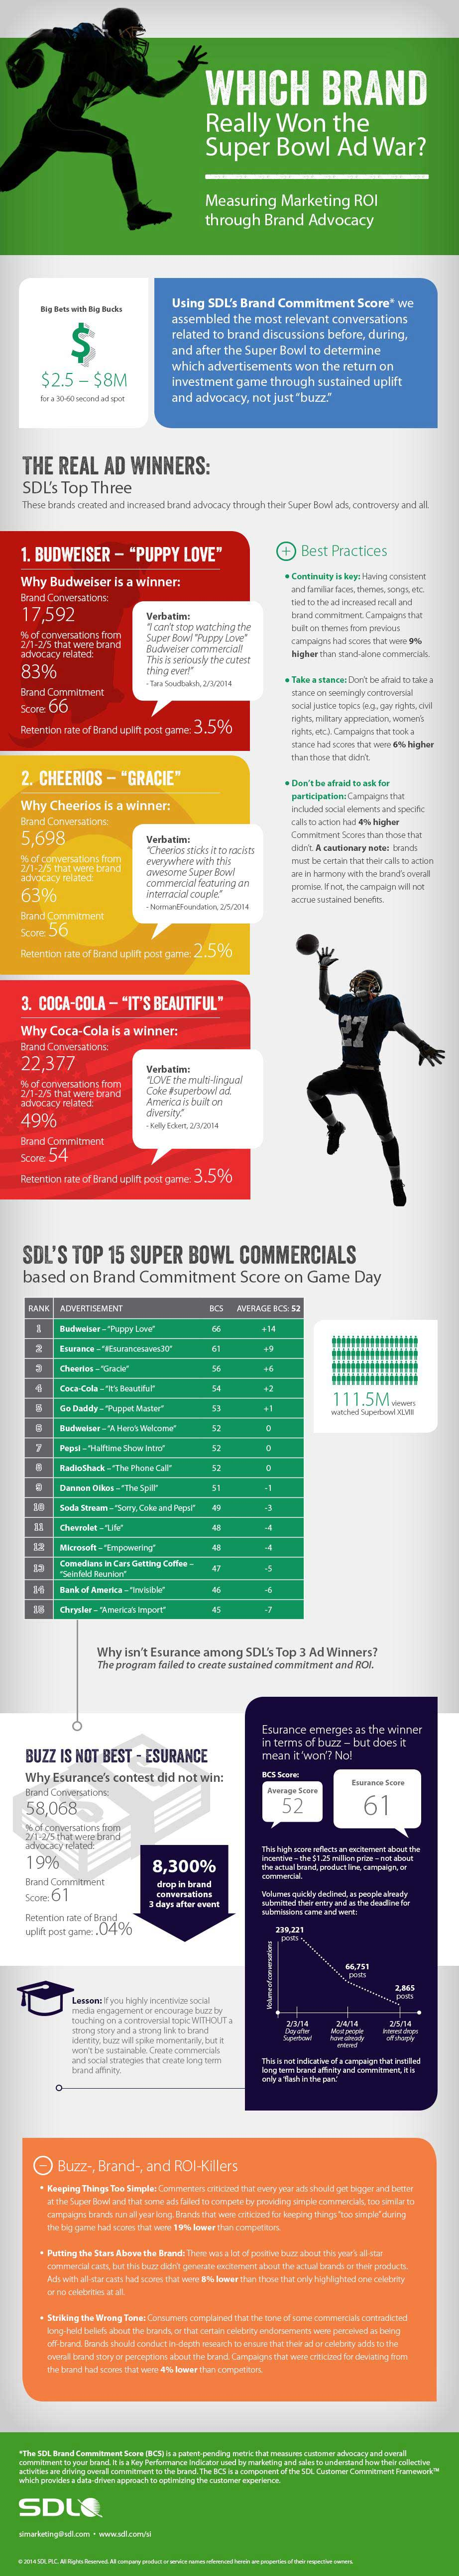 Which Brand Really Won the Super Bowl Ad War? [Infographic]